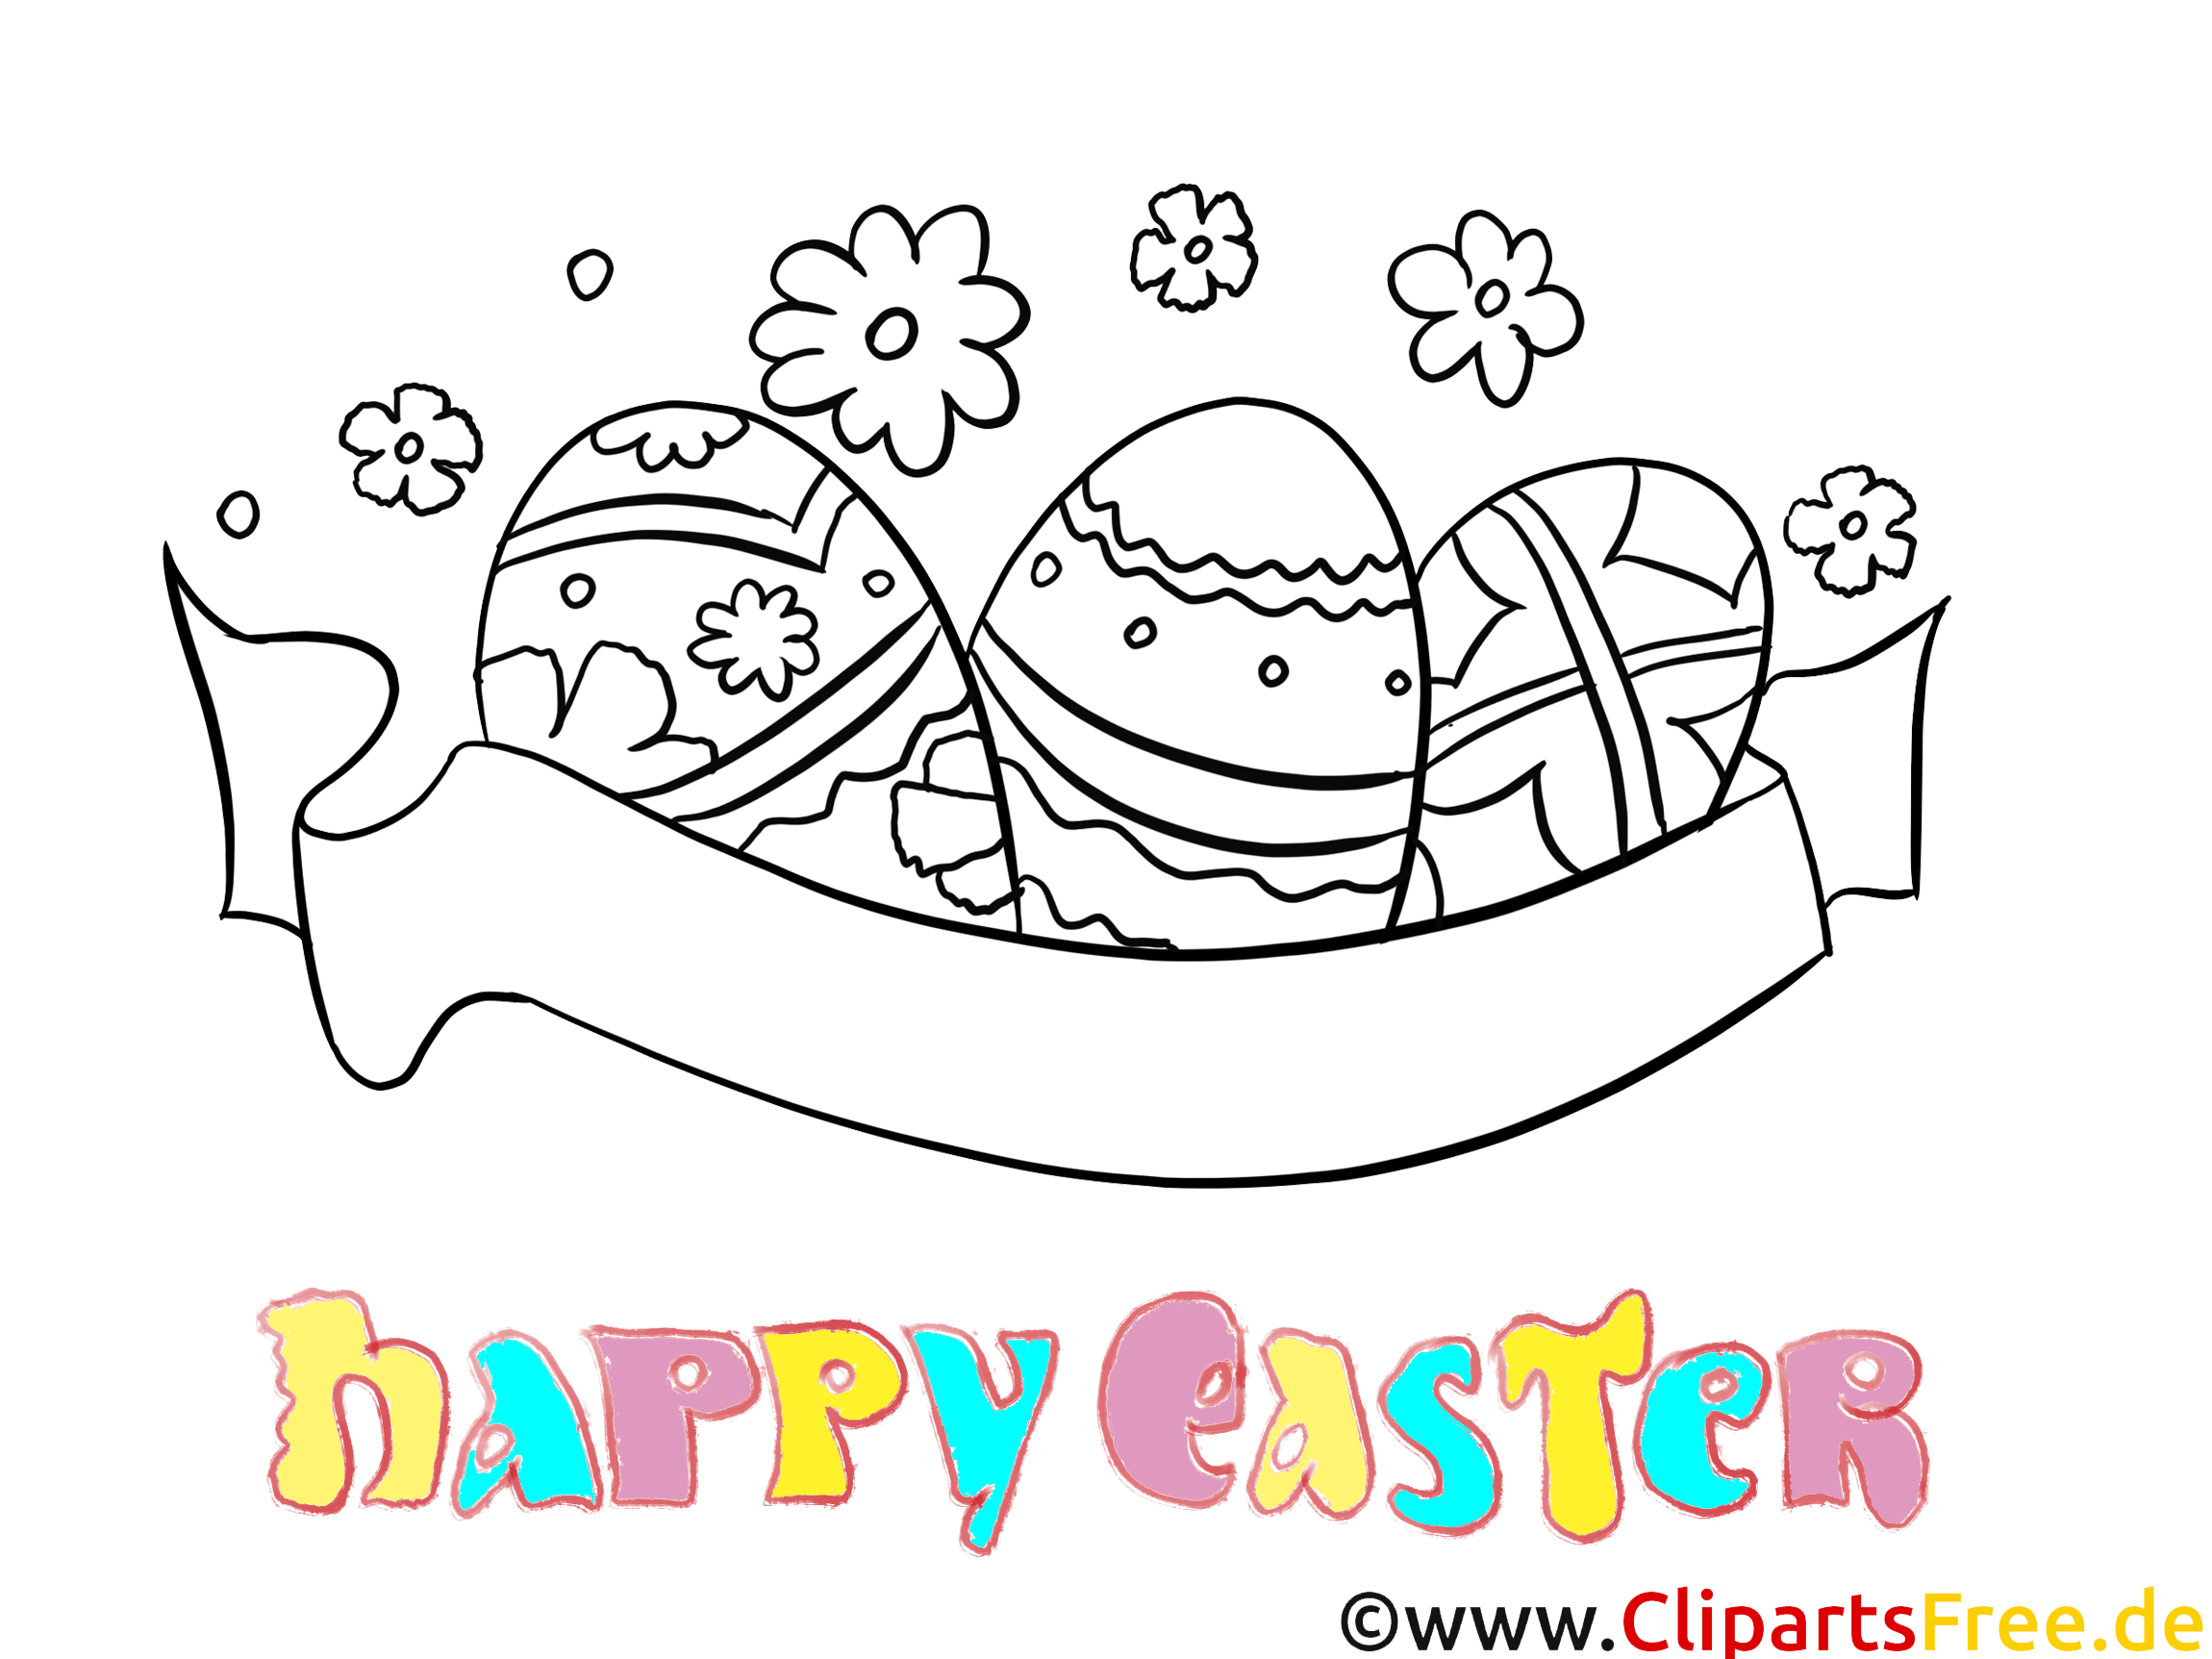 Colouring Happy Easter download and print free